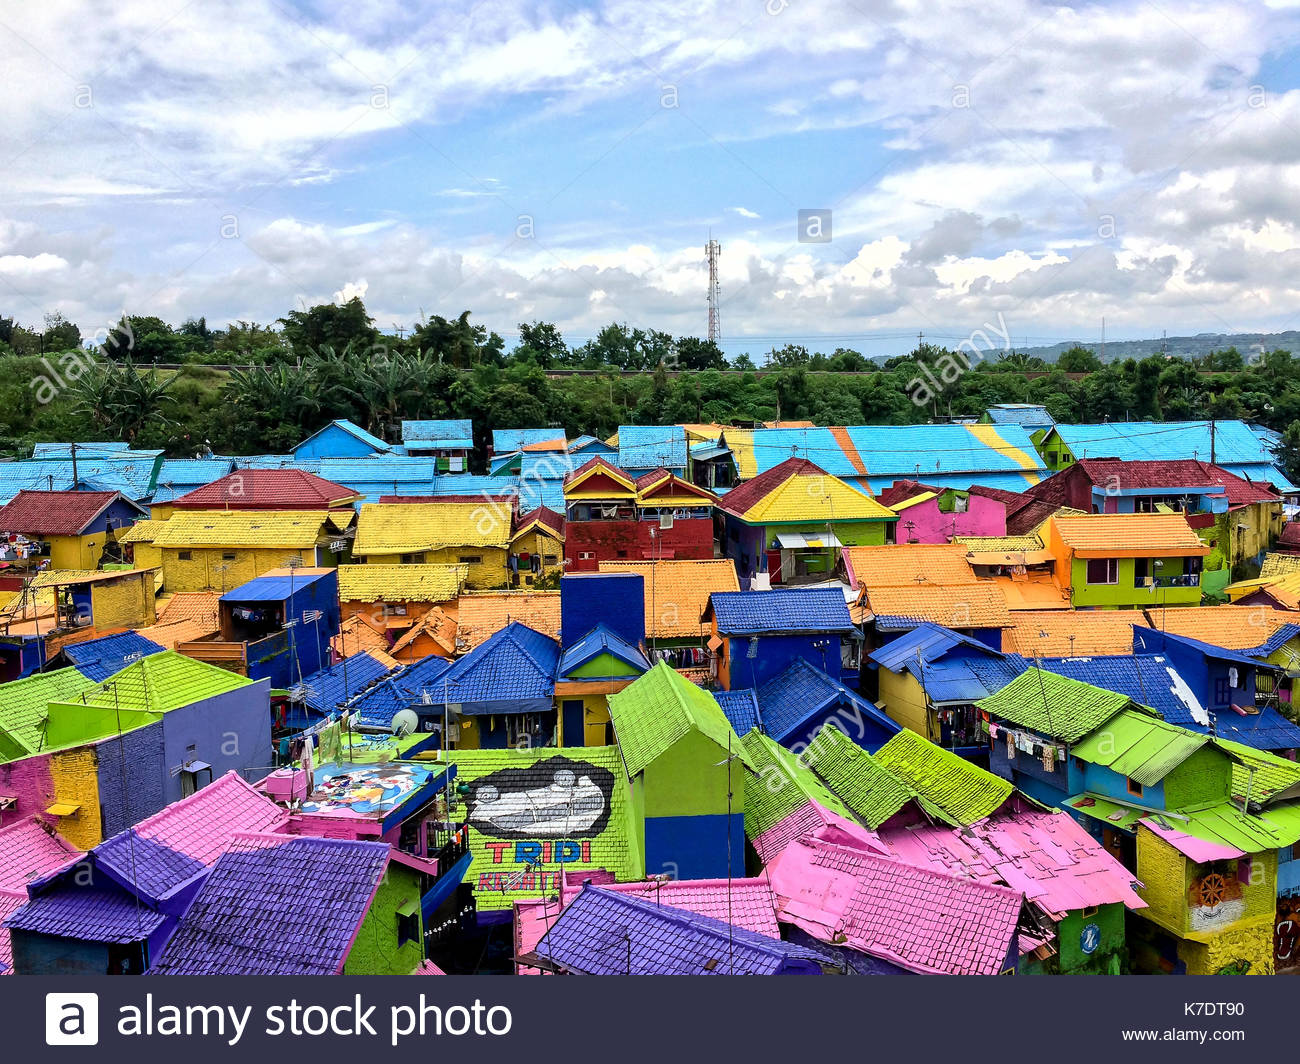 Colorful Village In Jodipan Malang Java Indonesia Stock Photo Alamy